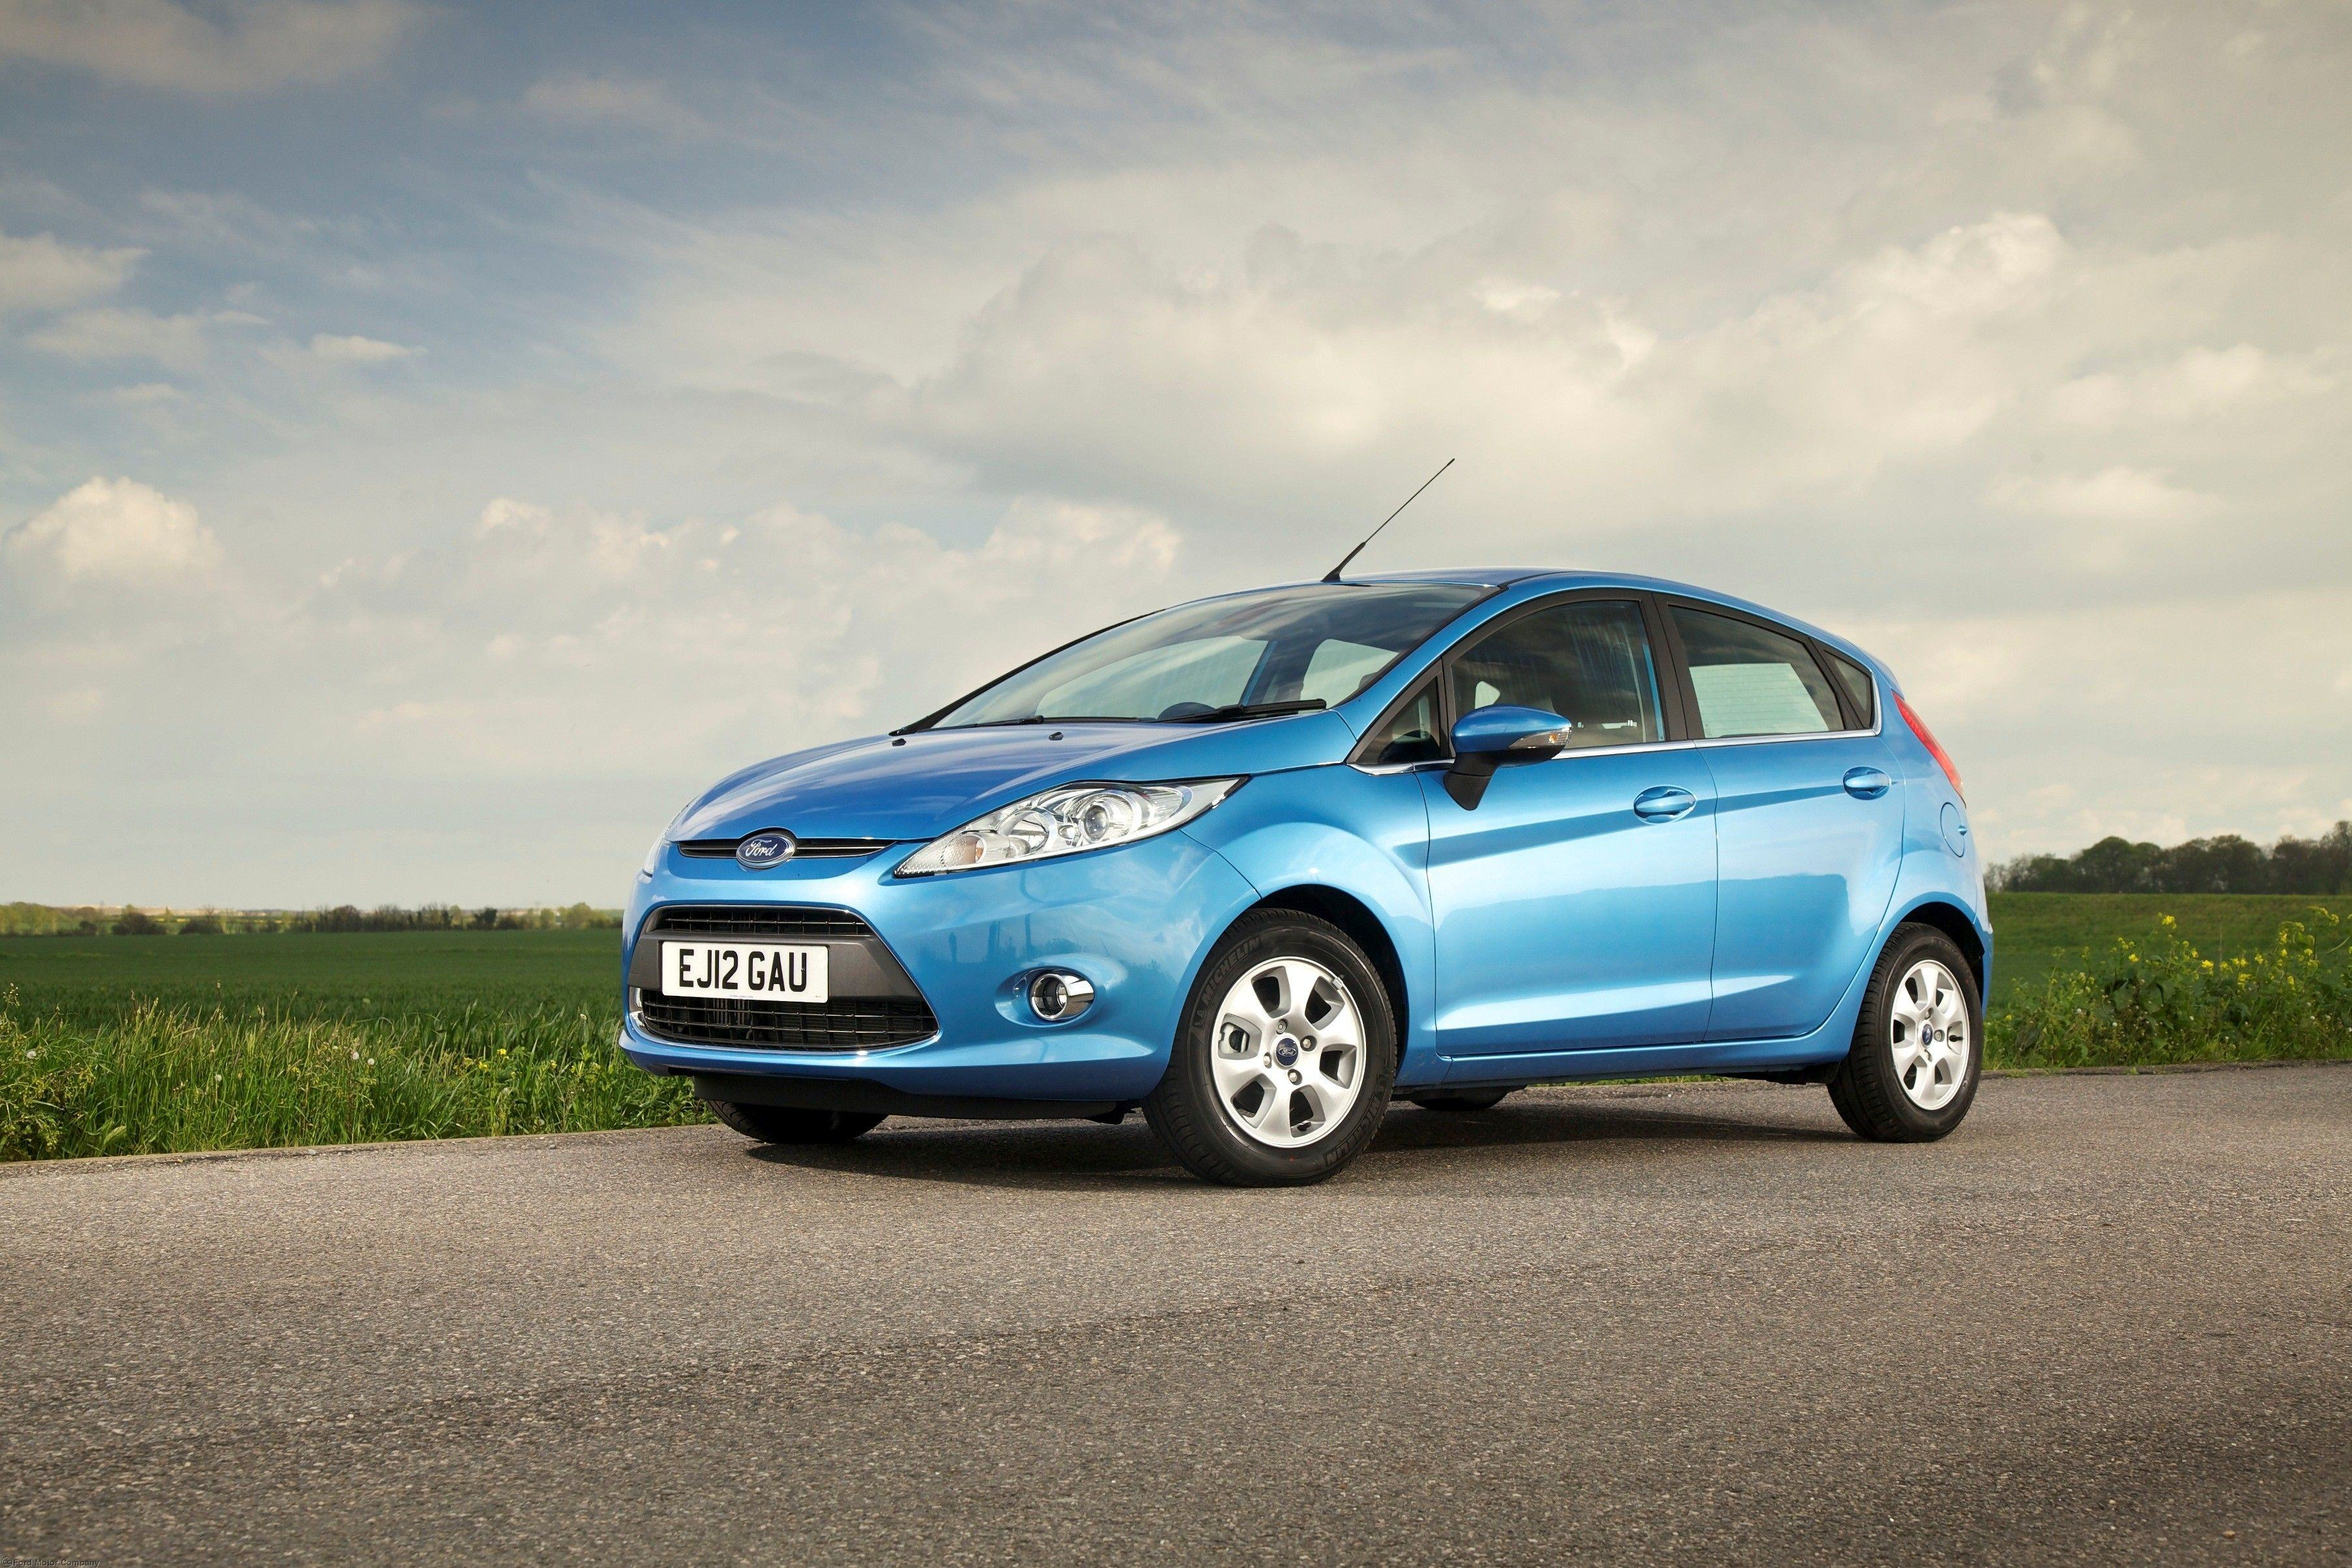 britains best selling car makes - HD3609×2406